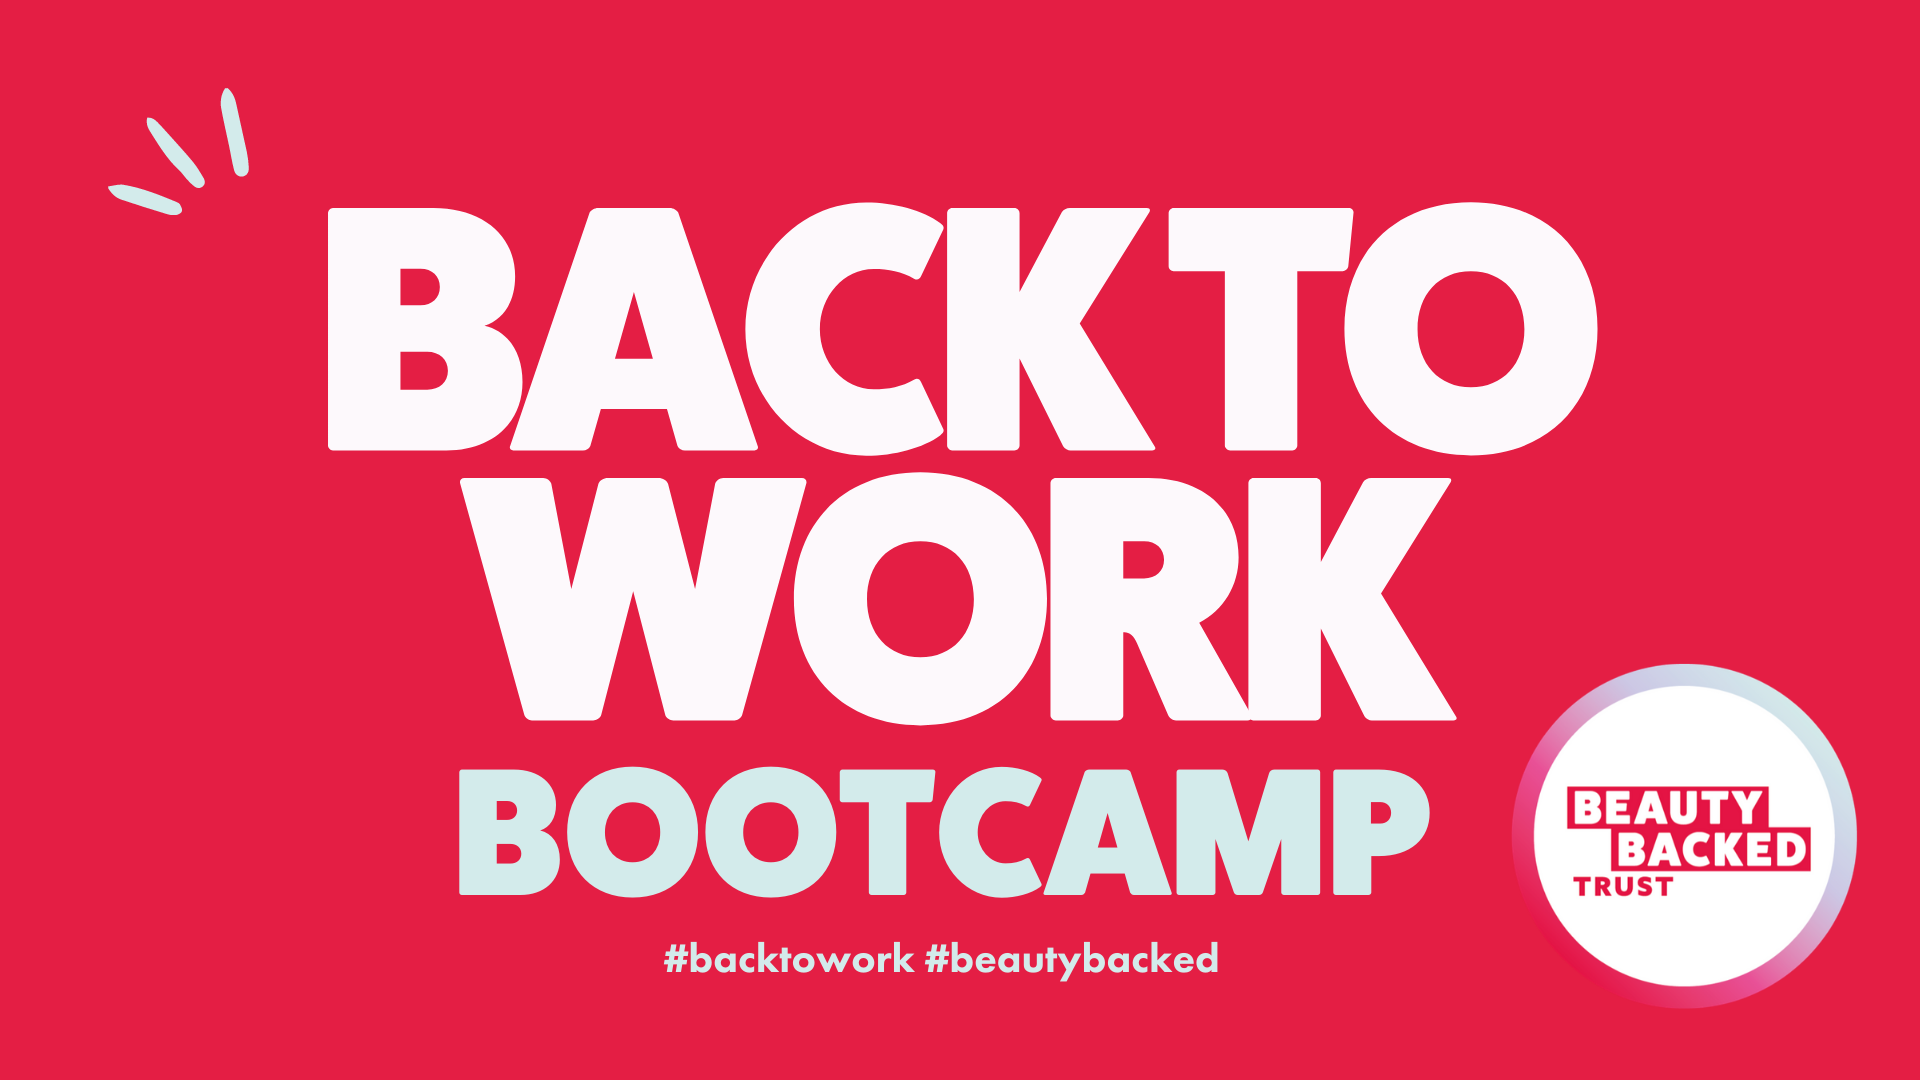 Back to Work Bootcamp